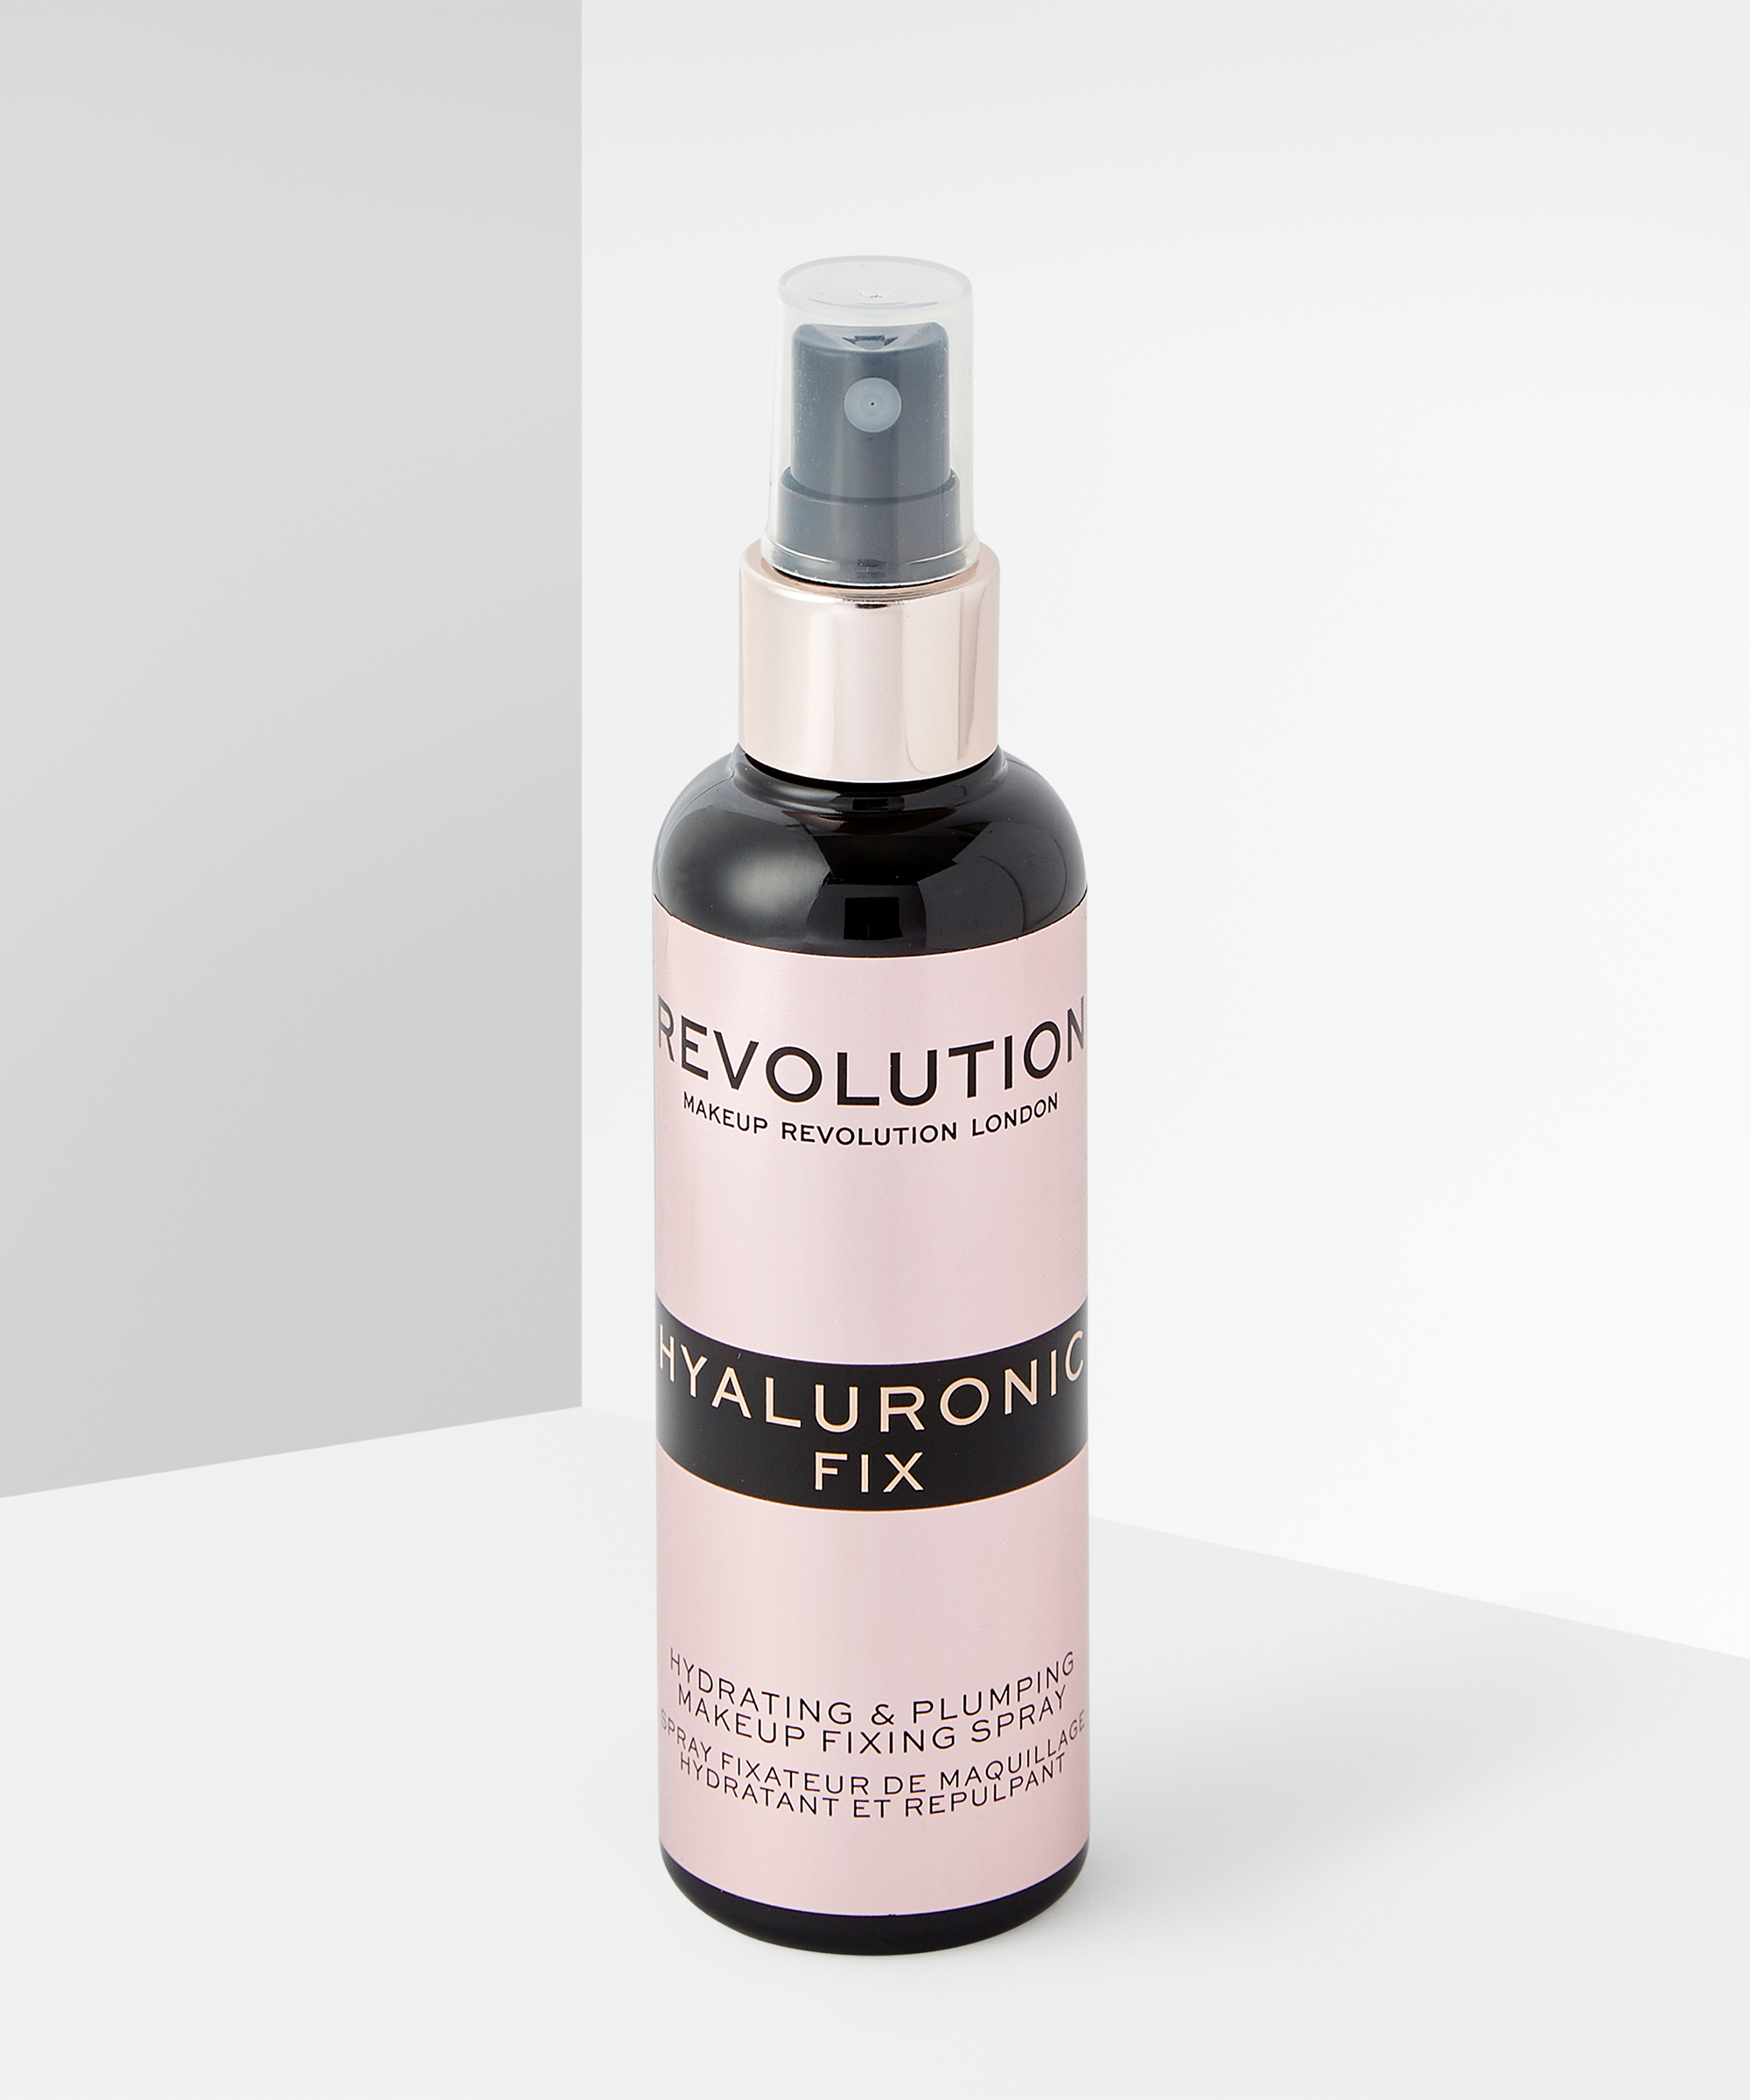 Makeup Revolution Hyaluronic Fixing